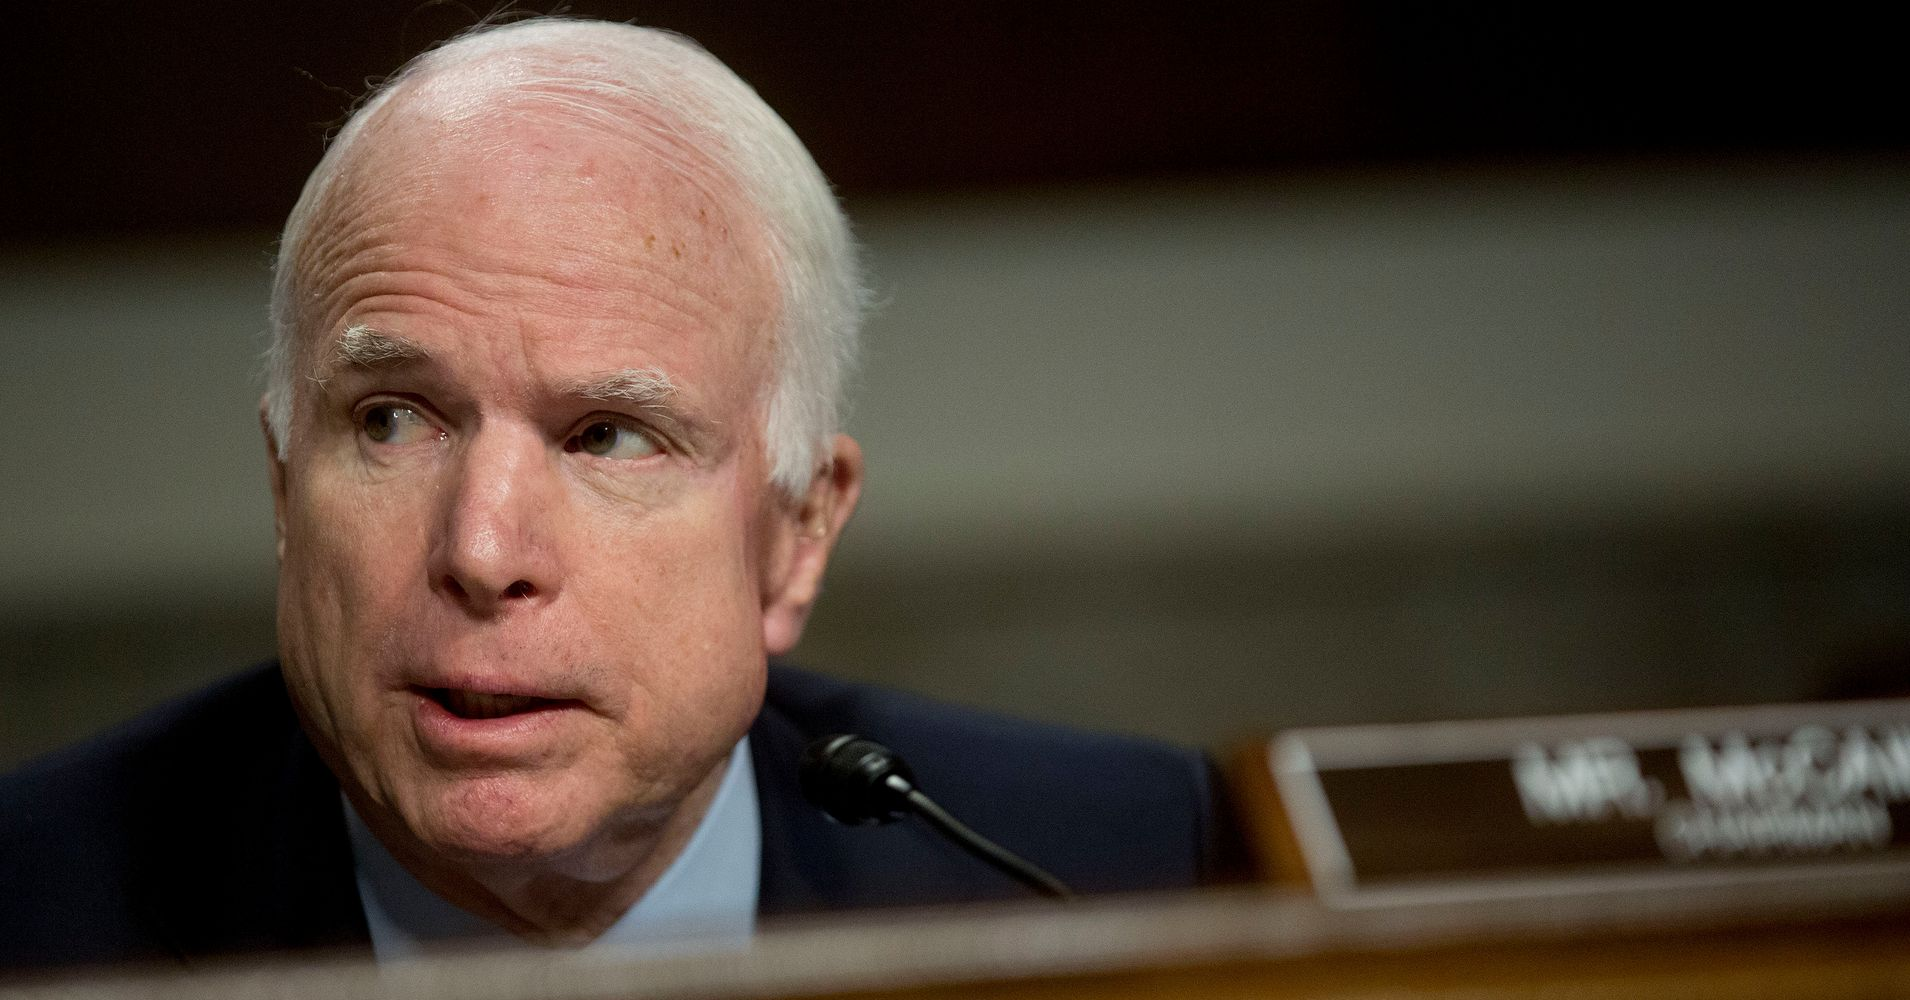 John McCain, Senator And Former Republican Presidential Nominee, Dead At 81